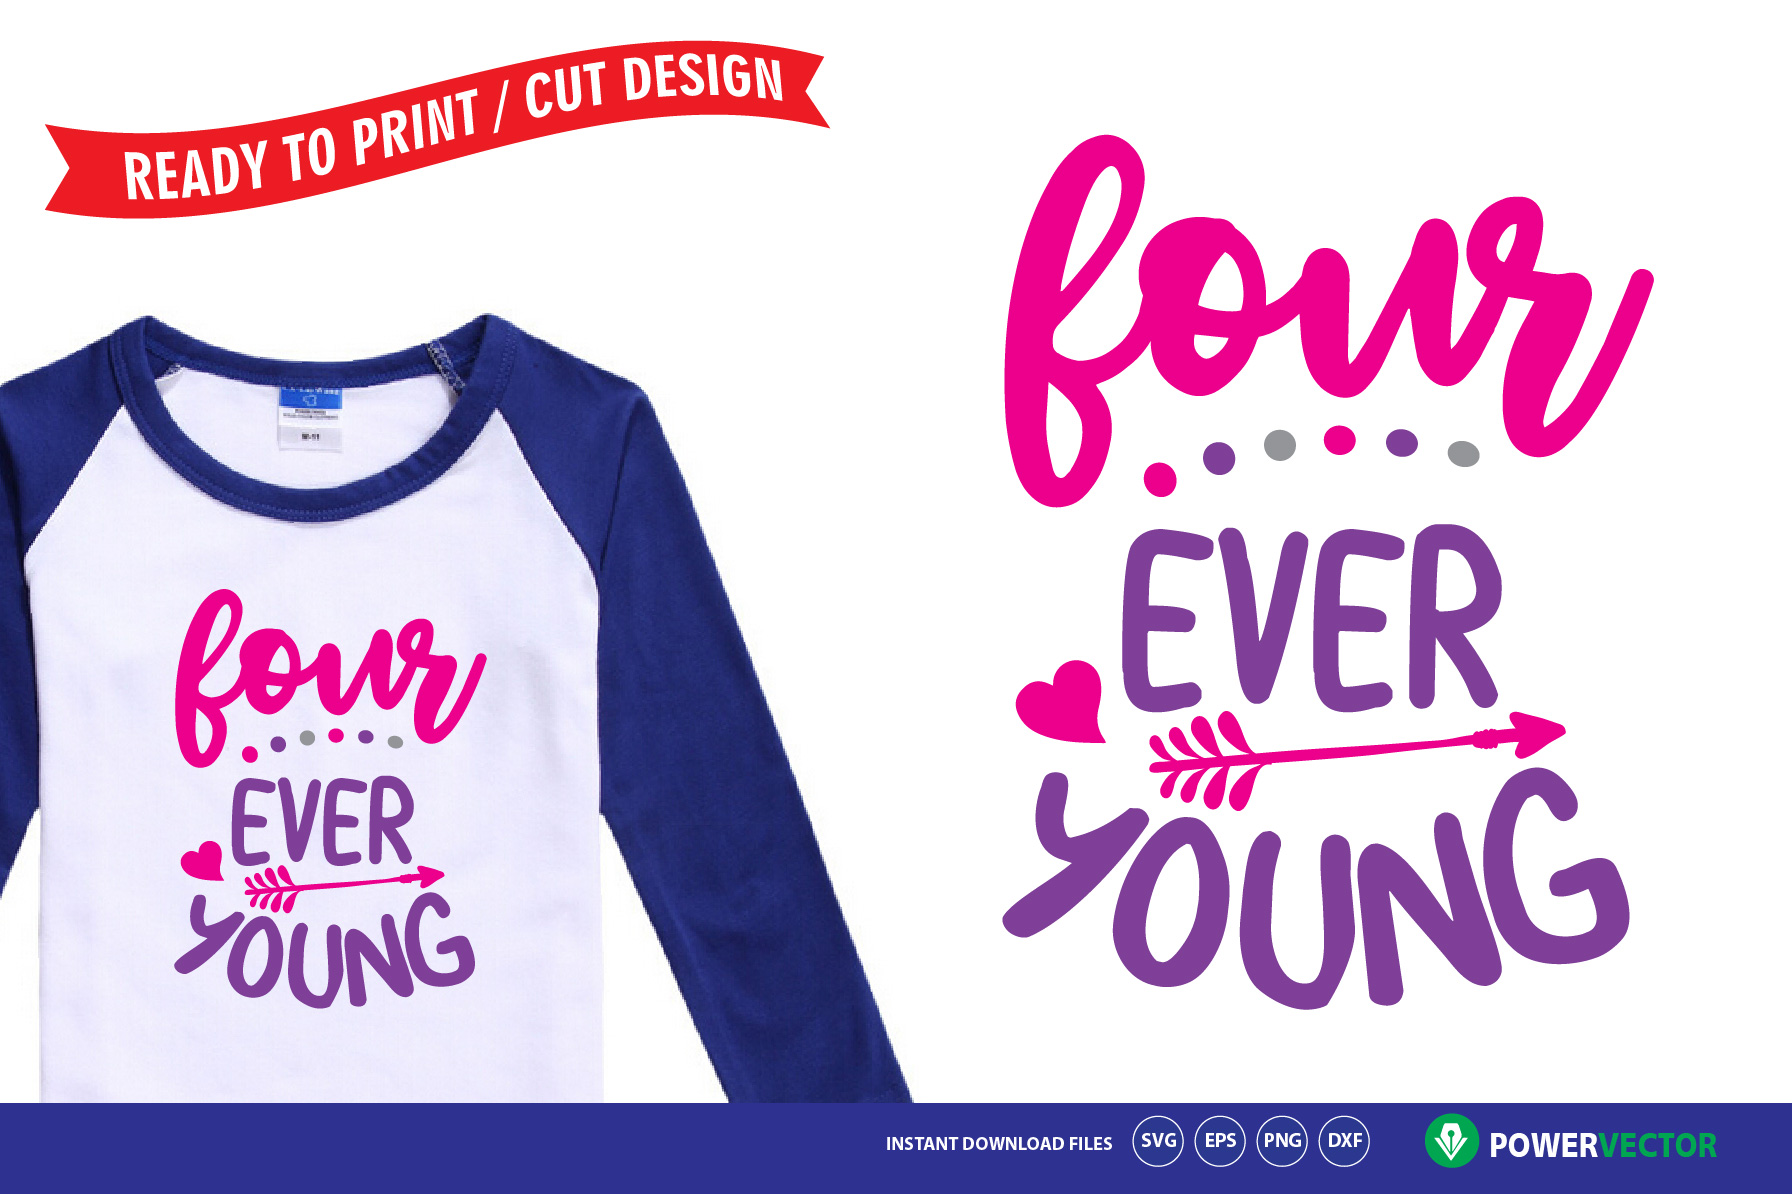 Kids Birthday Party T-Shirt Designs -Printing, Cutting Files example image 5